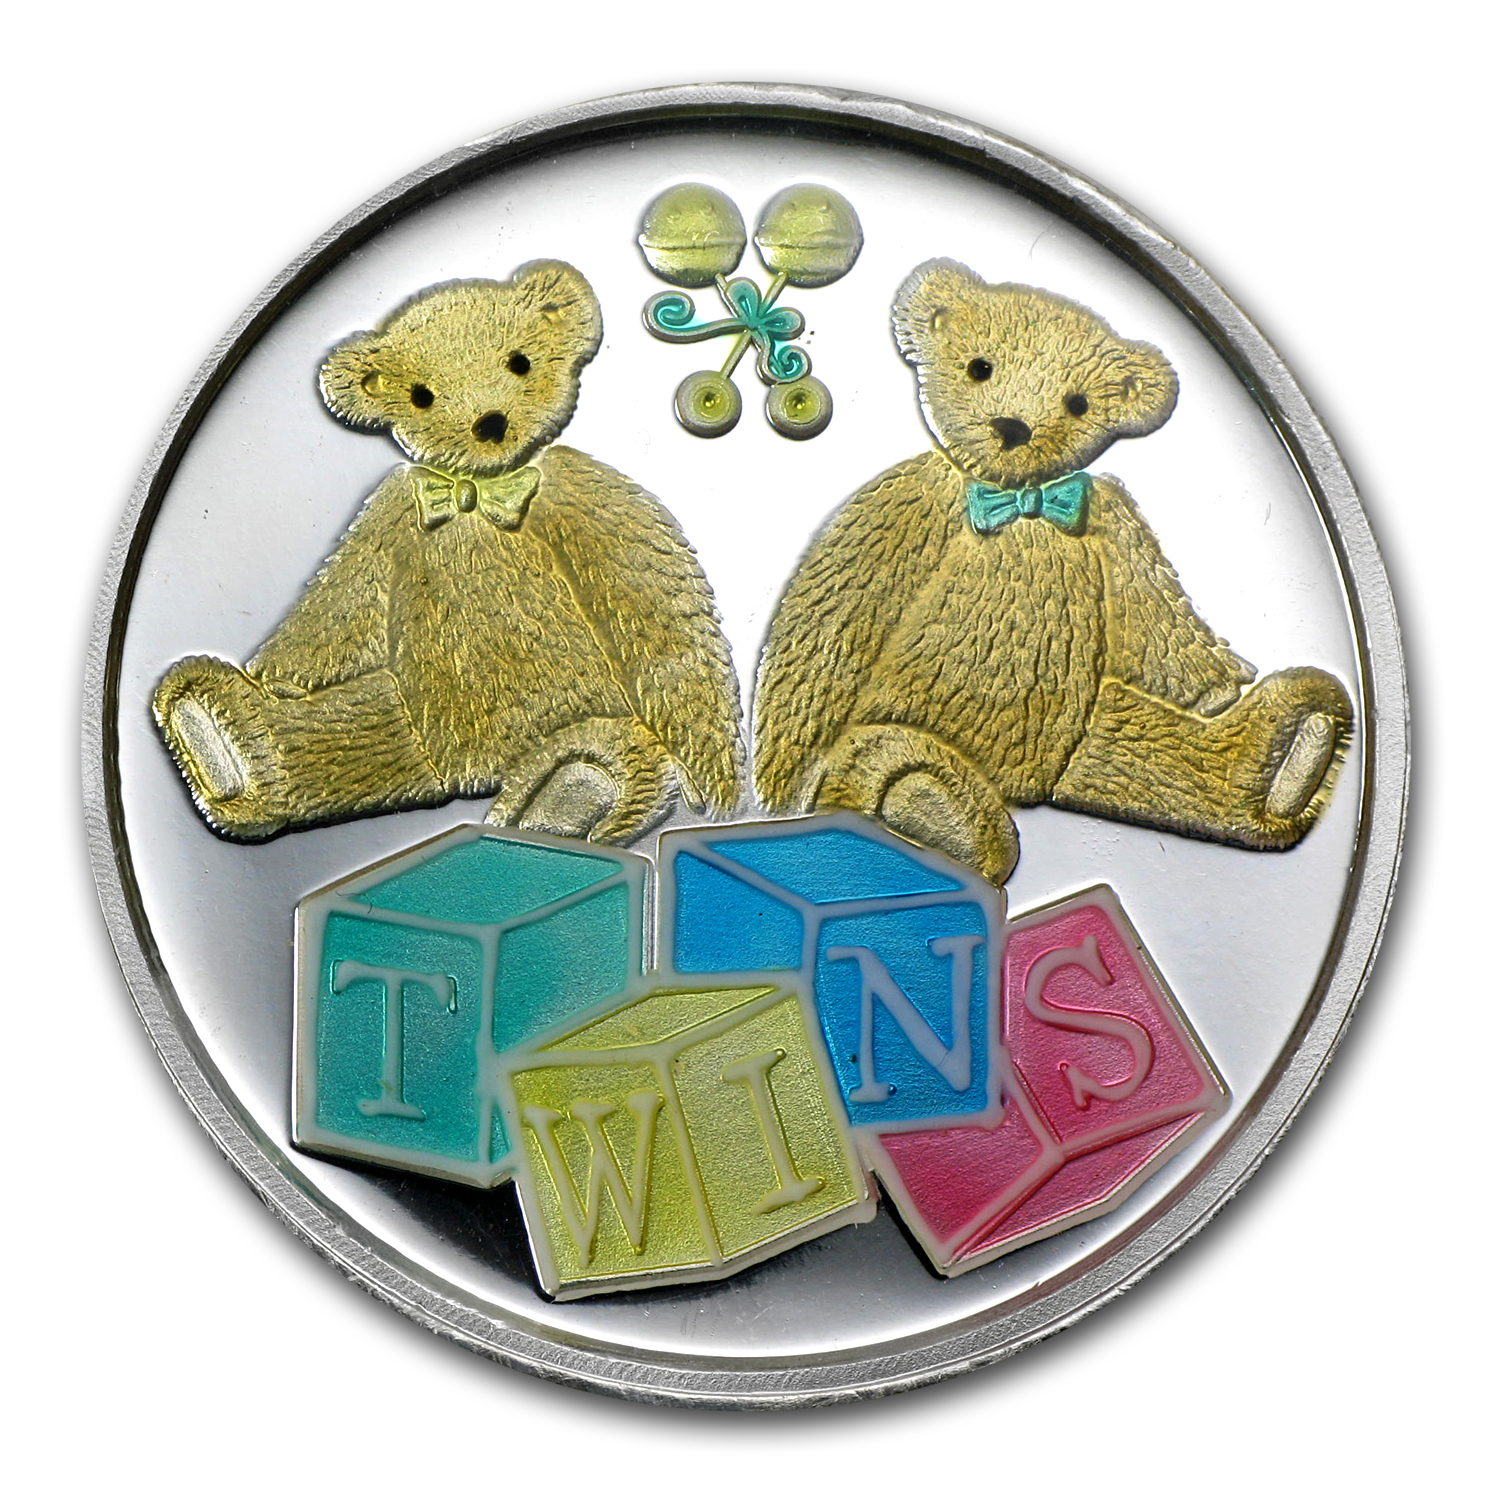 1 oz Silver Rounds - Twin Baby Enameled (w/Box & Capsule)